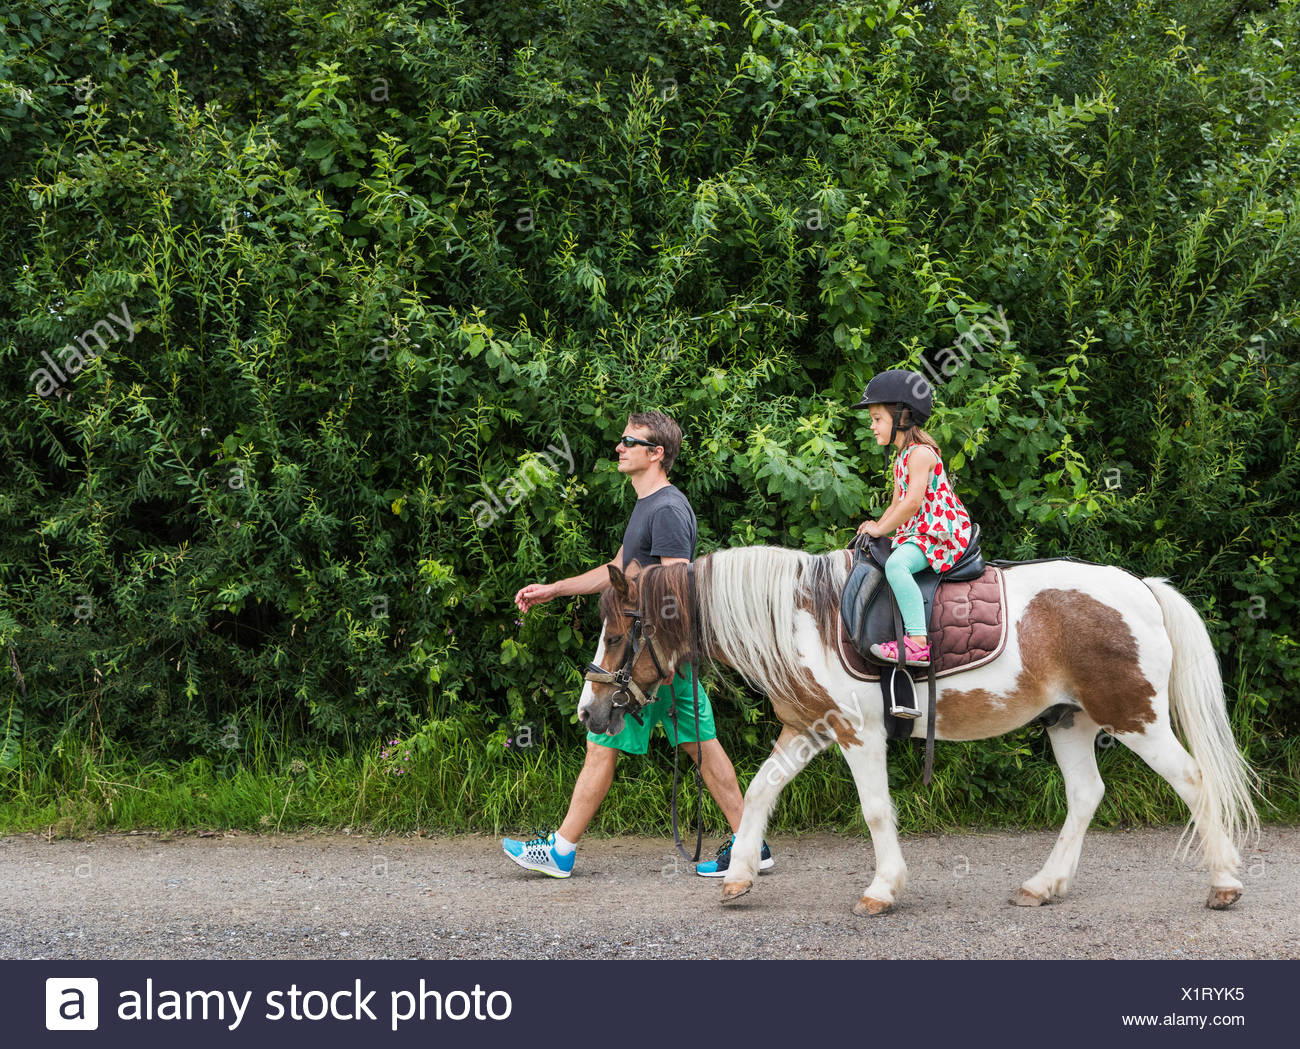 Side view of father guiding daughter riding horse - Stock Image